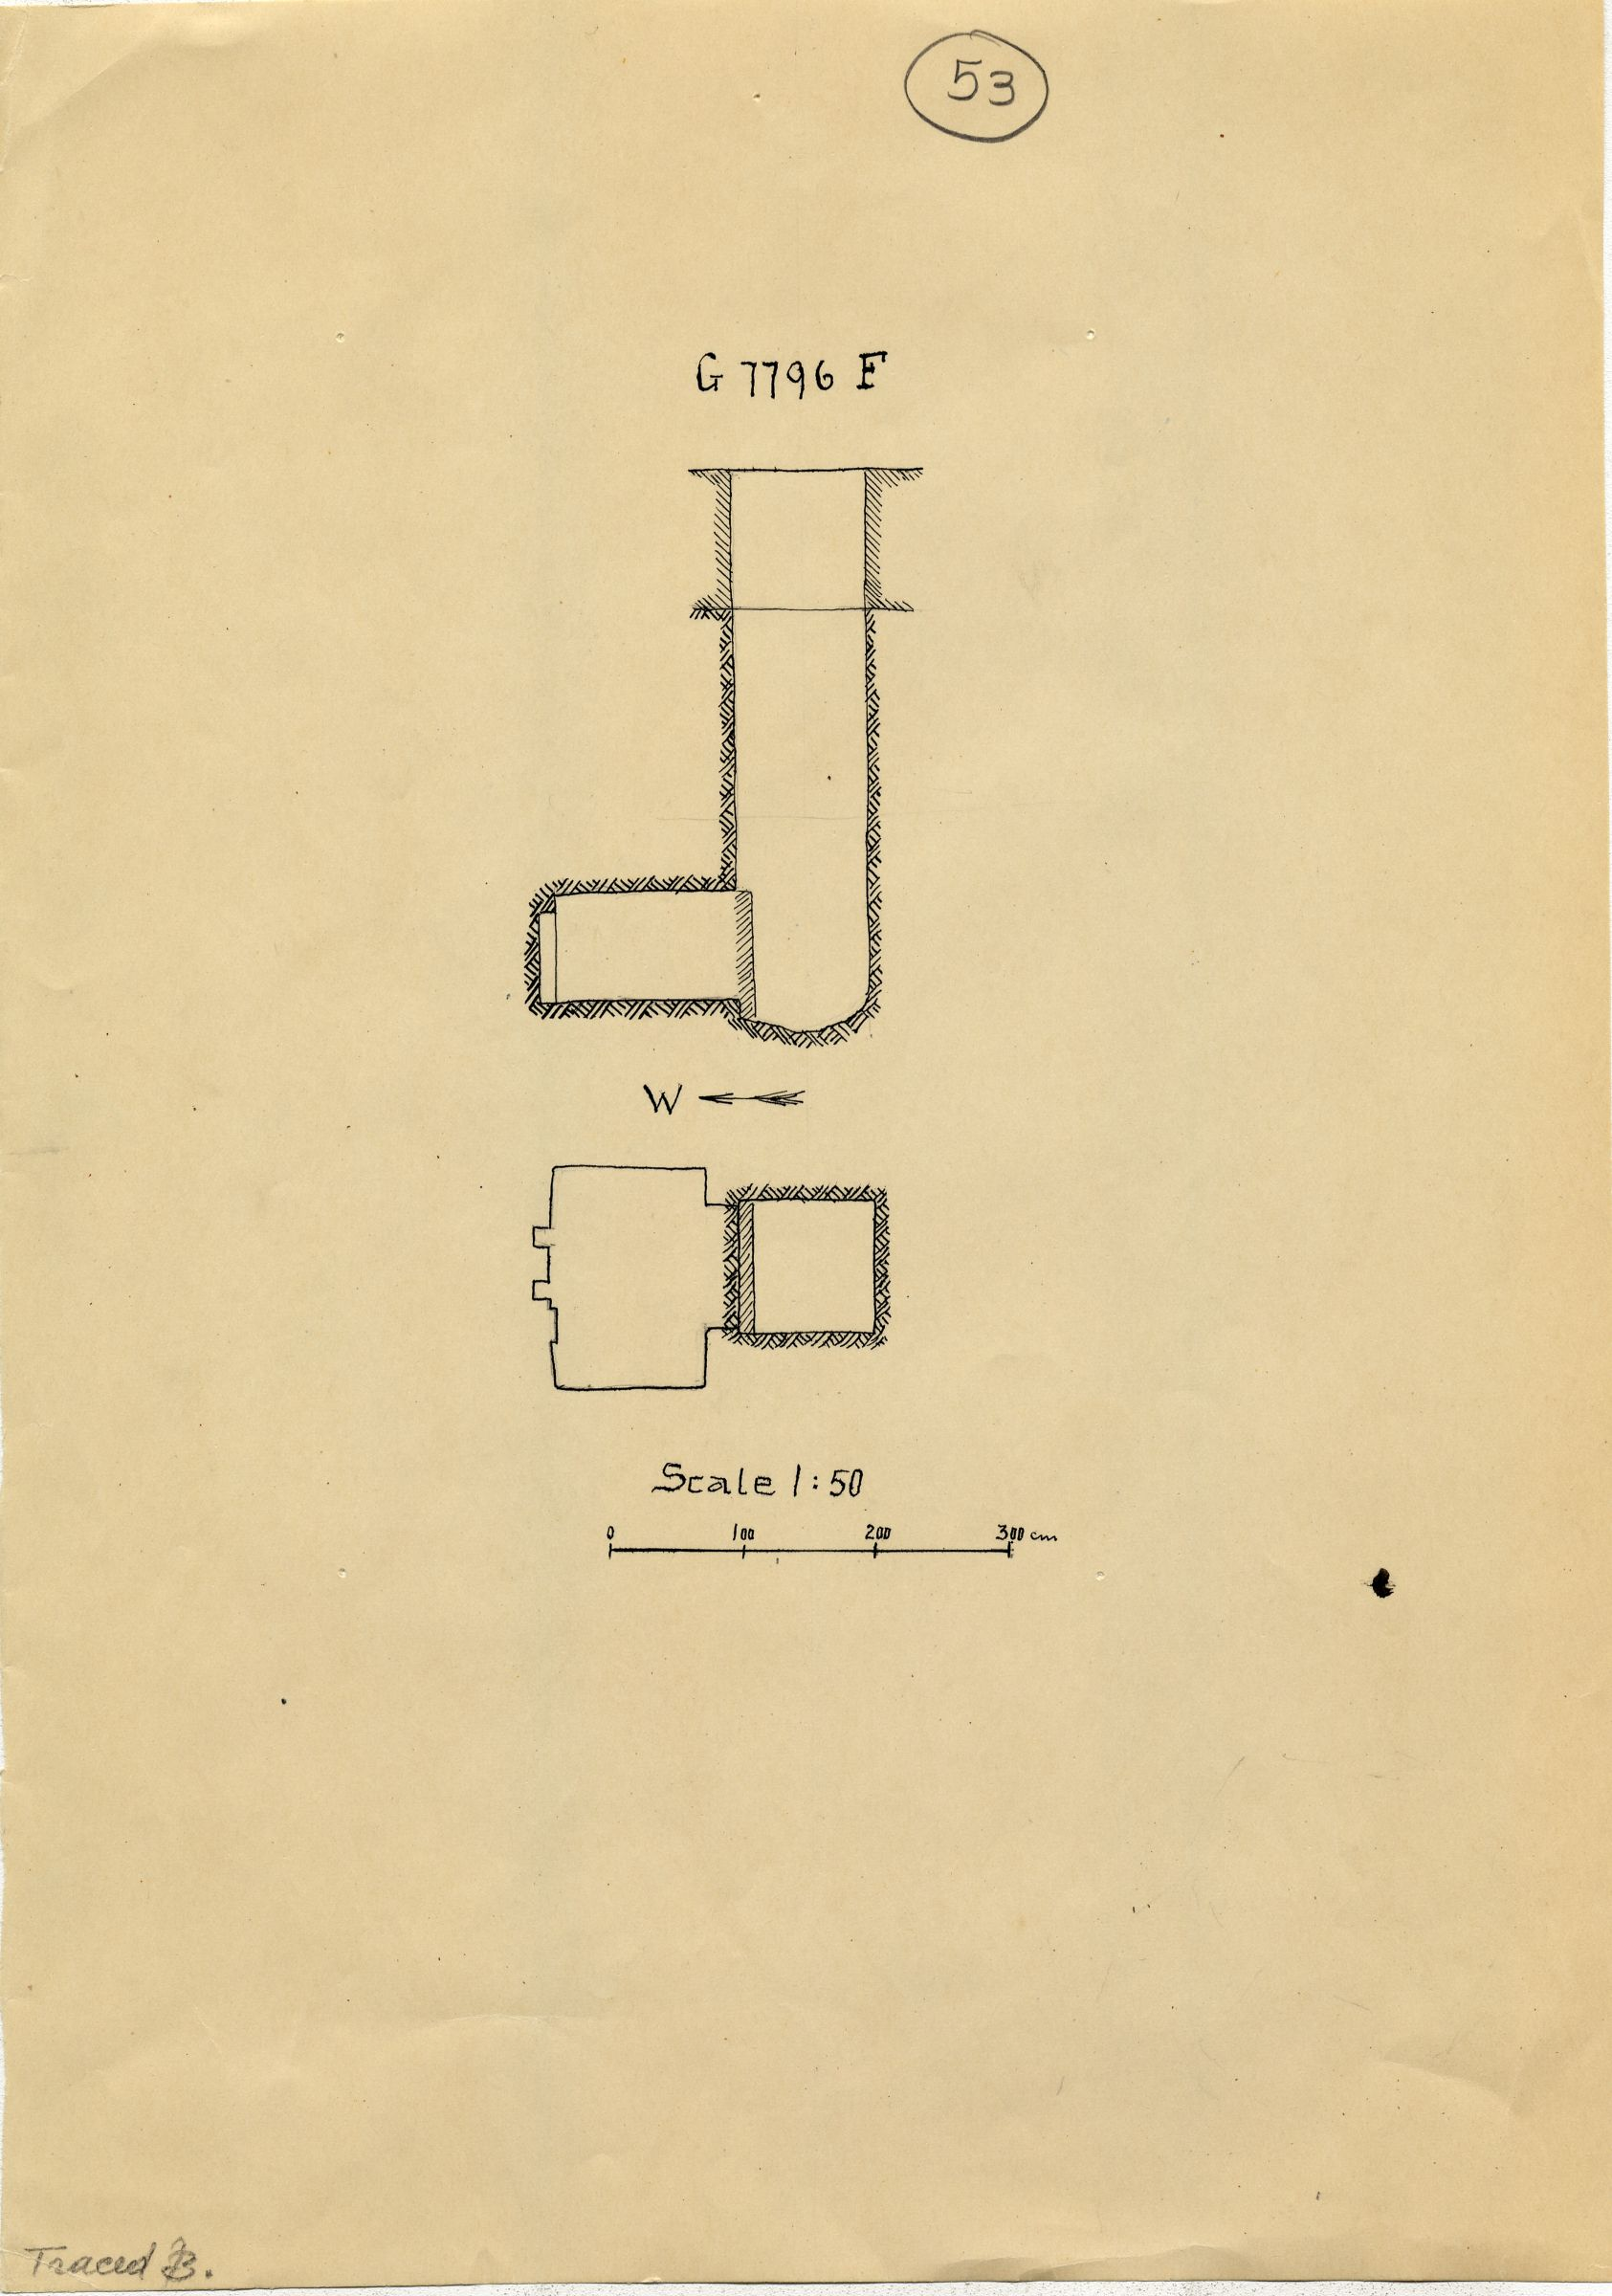 Maps and plans: G 7796, Shaft F